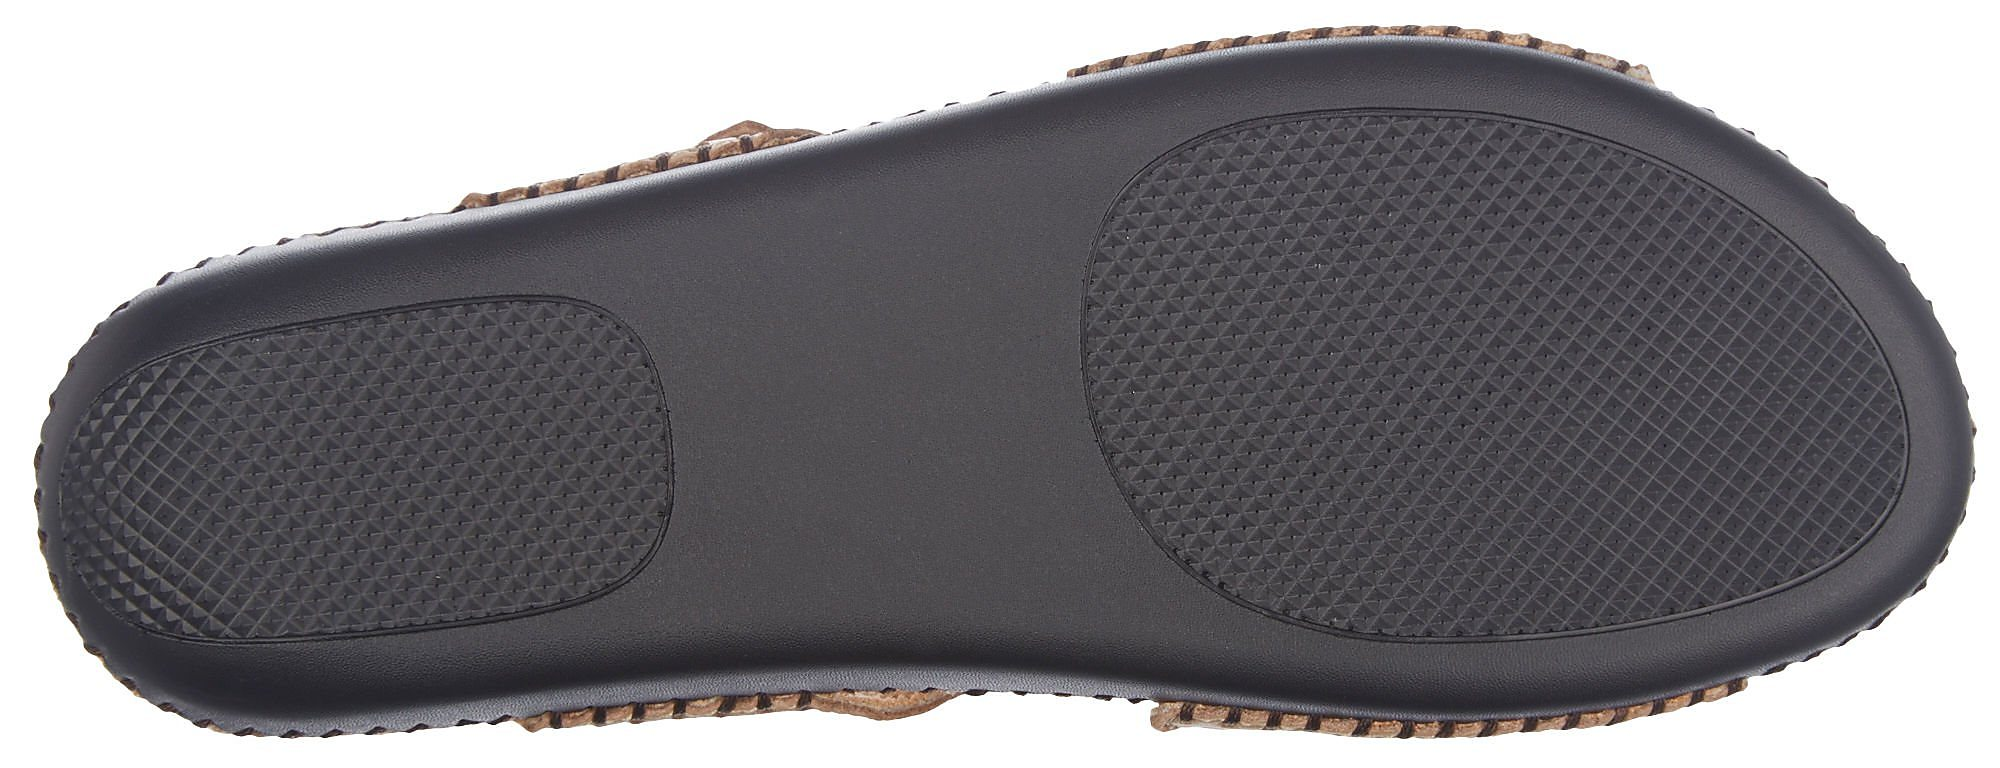 Naturalizer-Womens-Scout-II-Sandals thumbnail 4